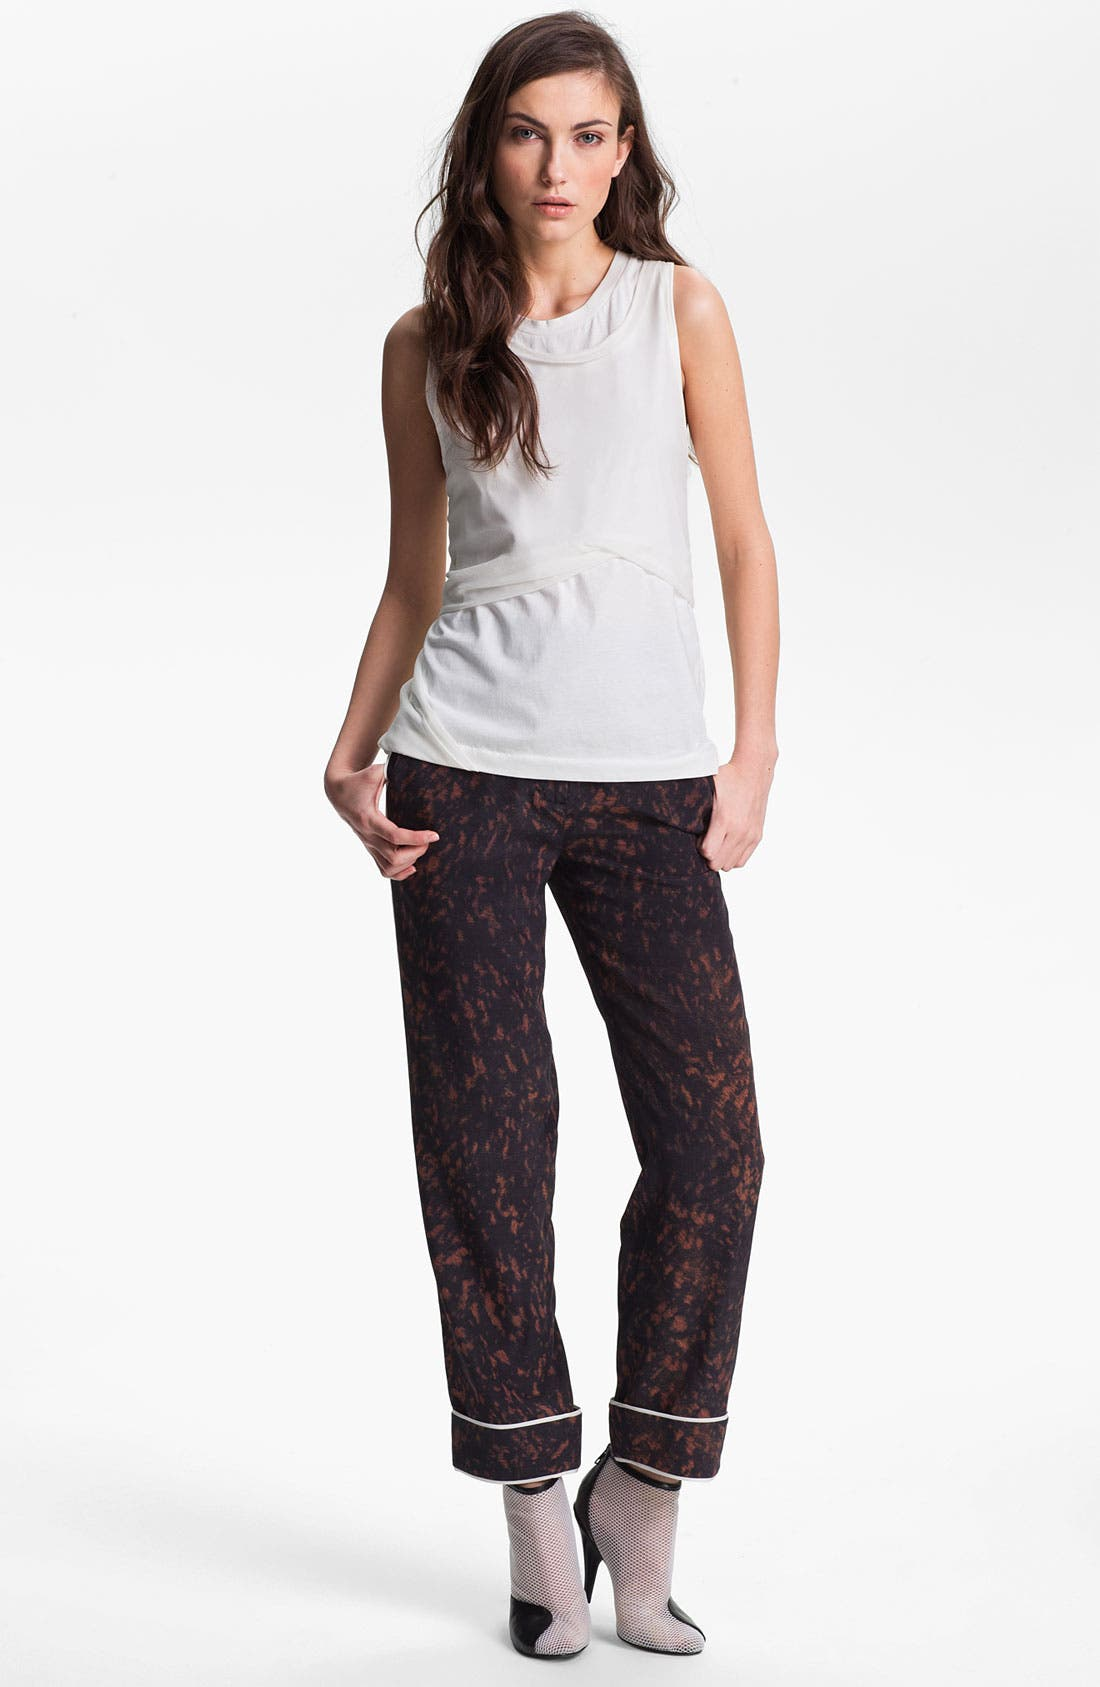 Main Image - 3.1 Phillip Lim Twisted & Layered Top